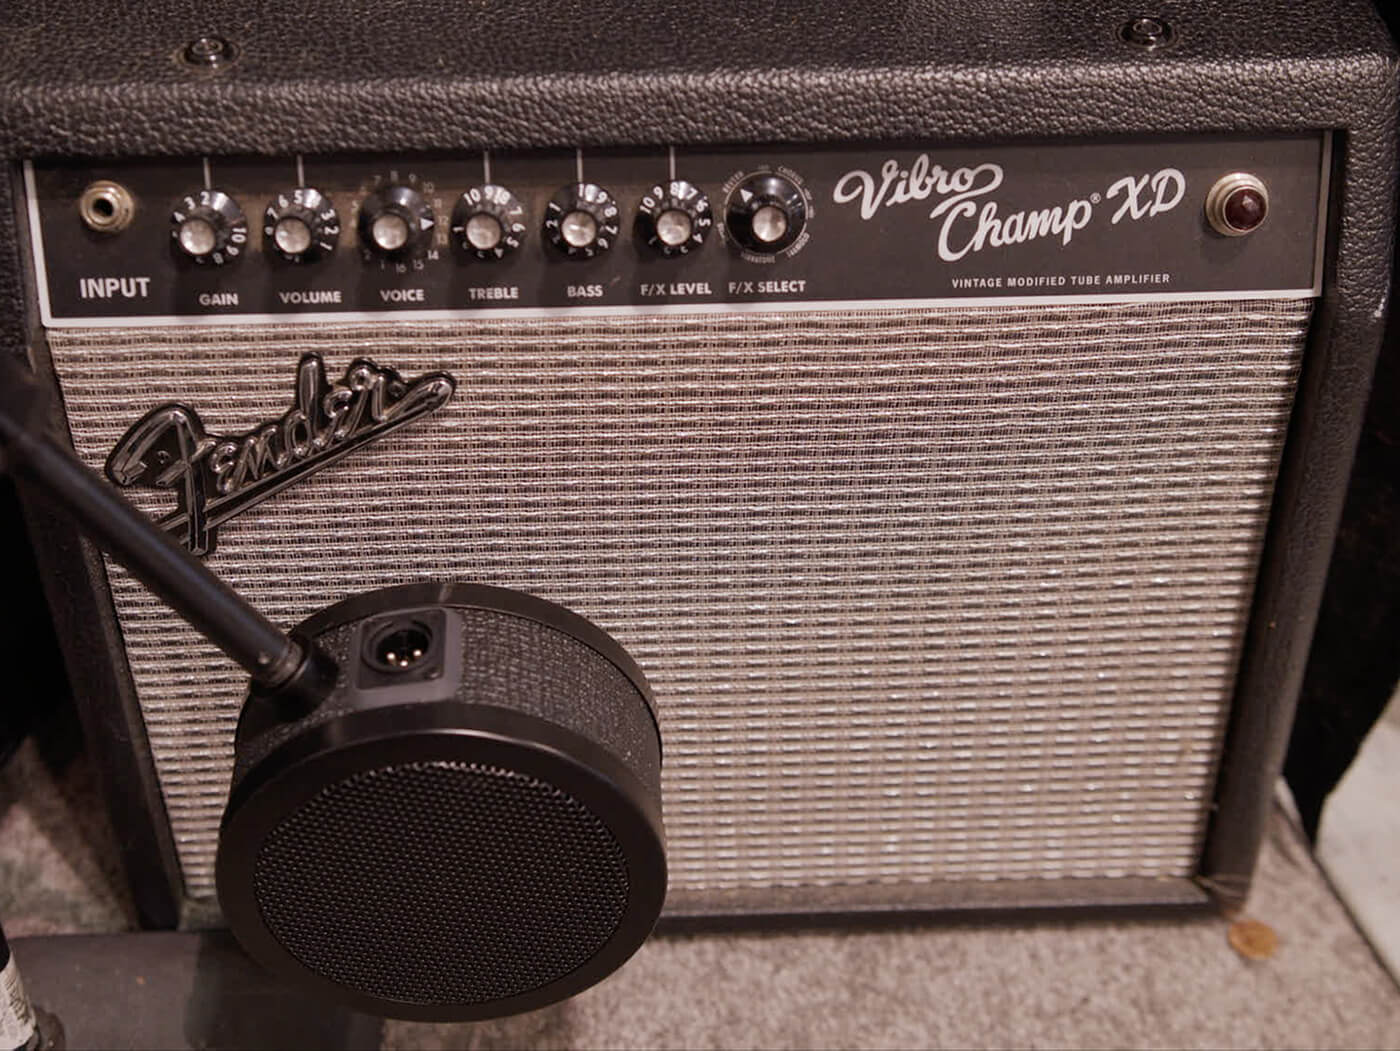 Summer NAMM 2019 Video: Solomon Design aims for thick guitars with MidFreq mic